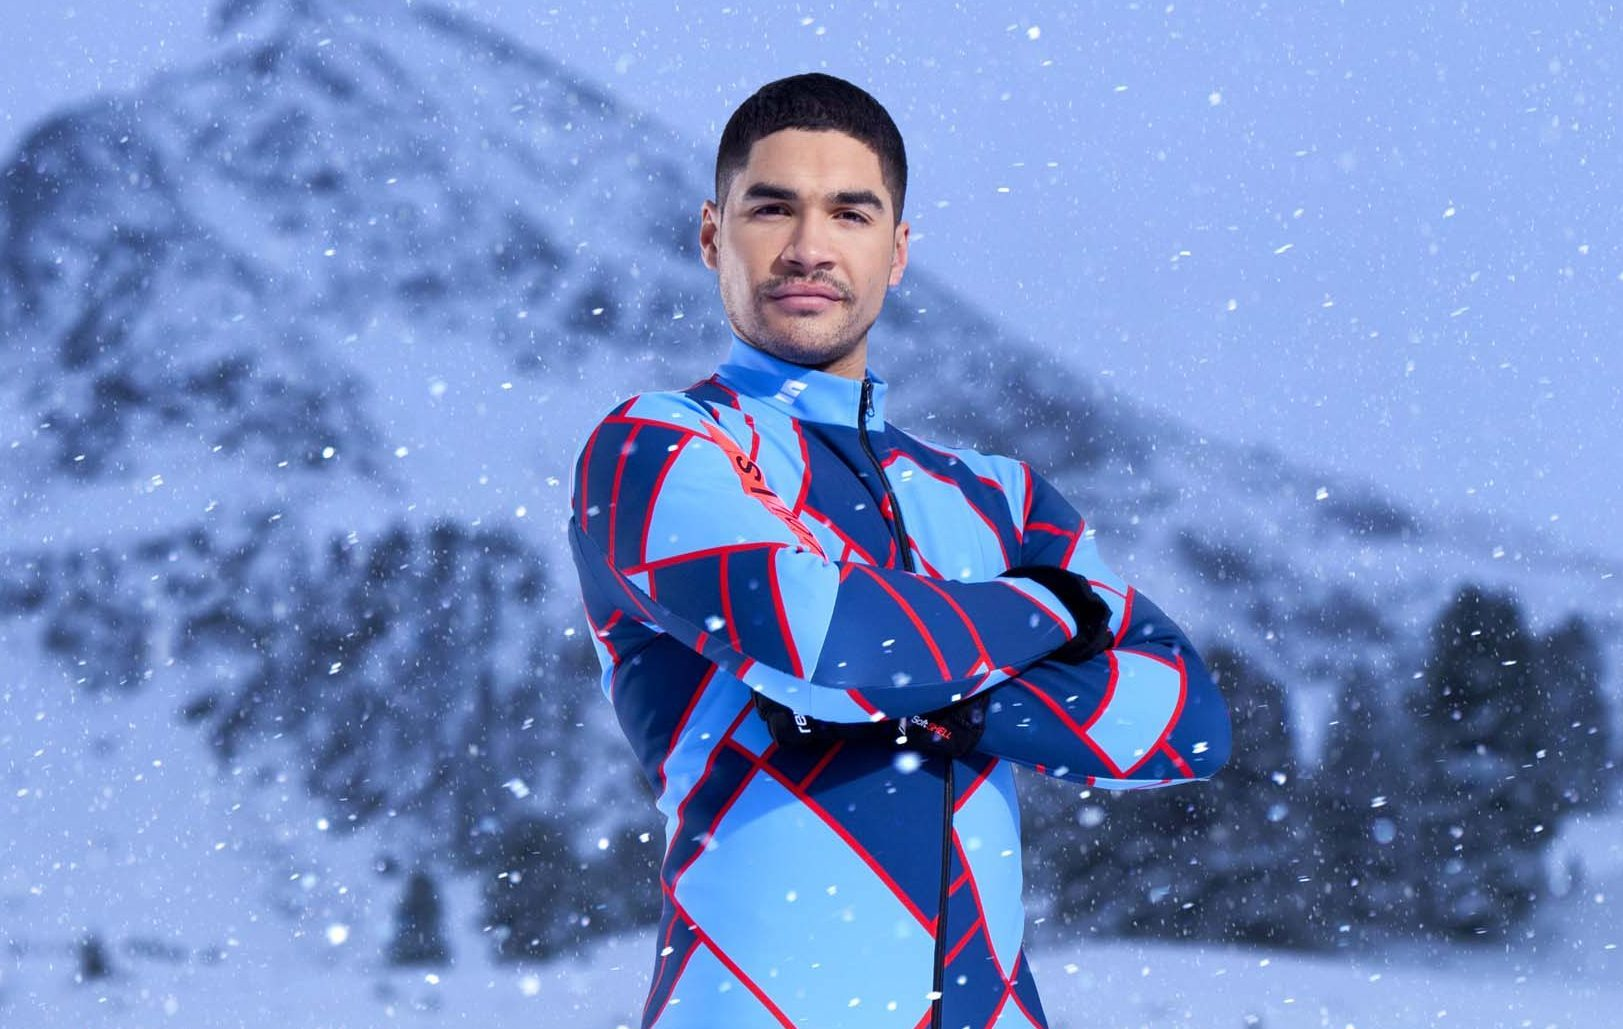 Louis Smith MBE is taking part in this year's edition of The Jump (Channel 4)